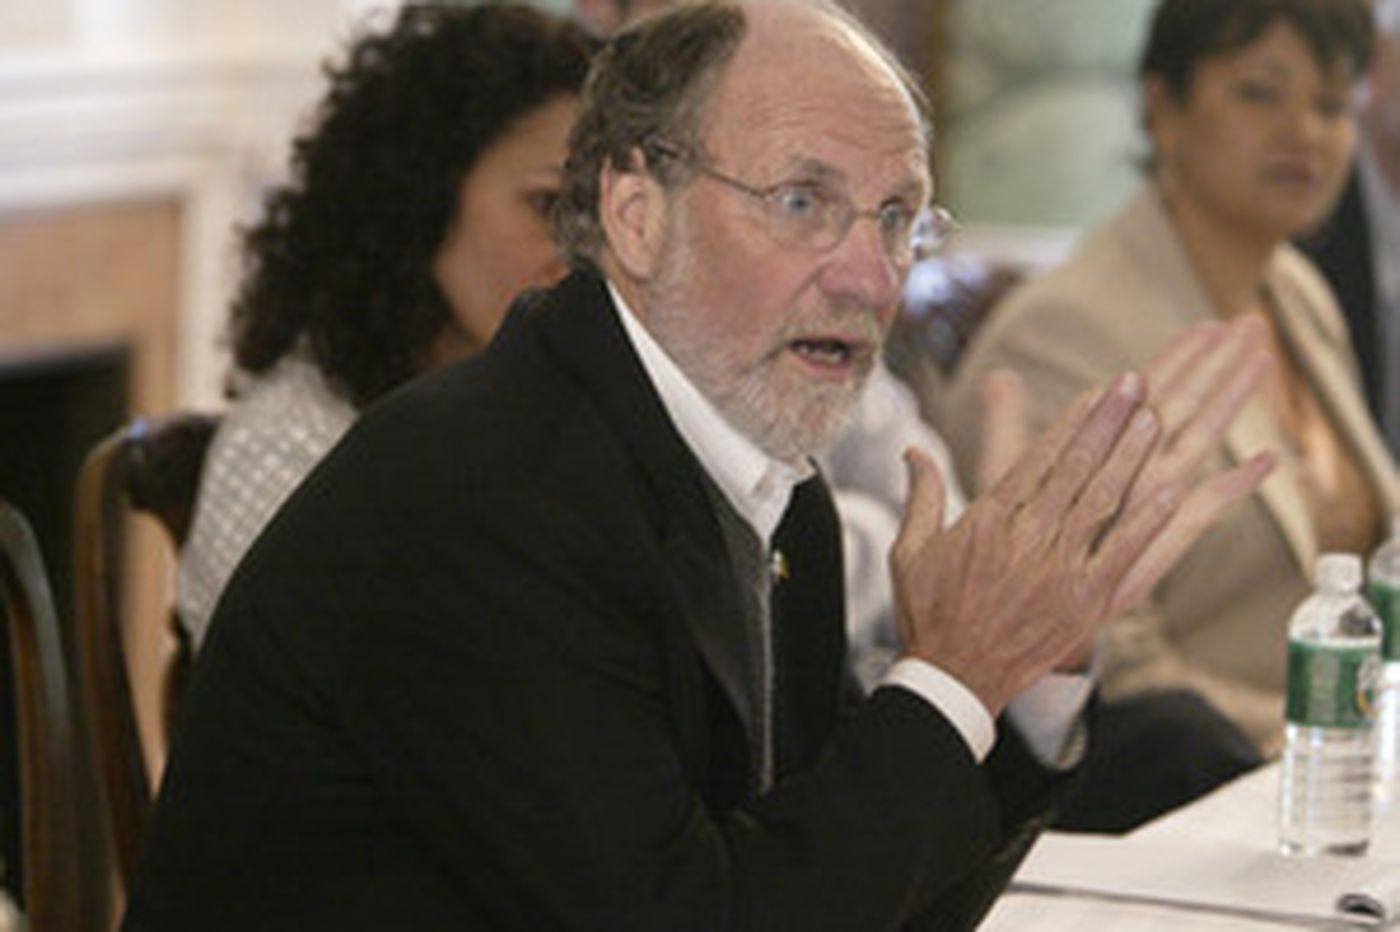 Panel: No ethics lapse by Corzine